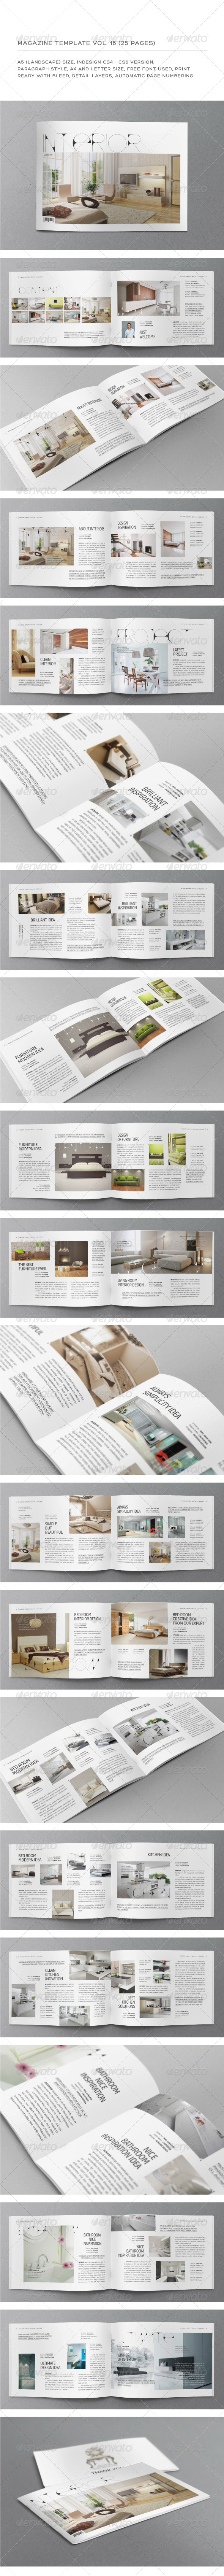 GraphicRiver InDesign Magazine Template Vol 16 25 Pages 5319305